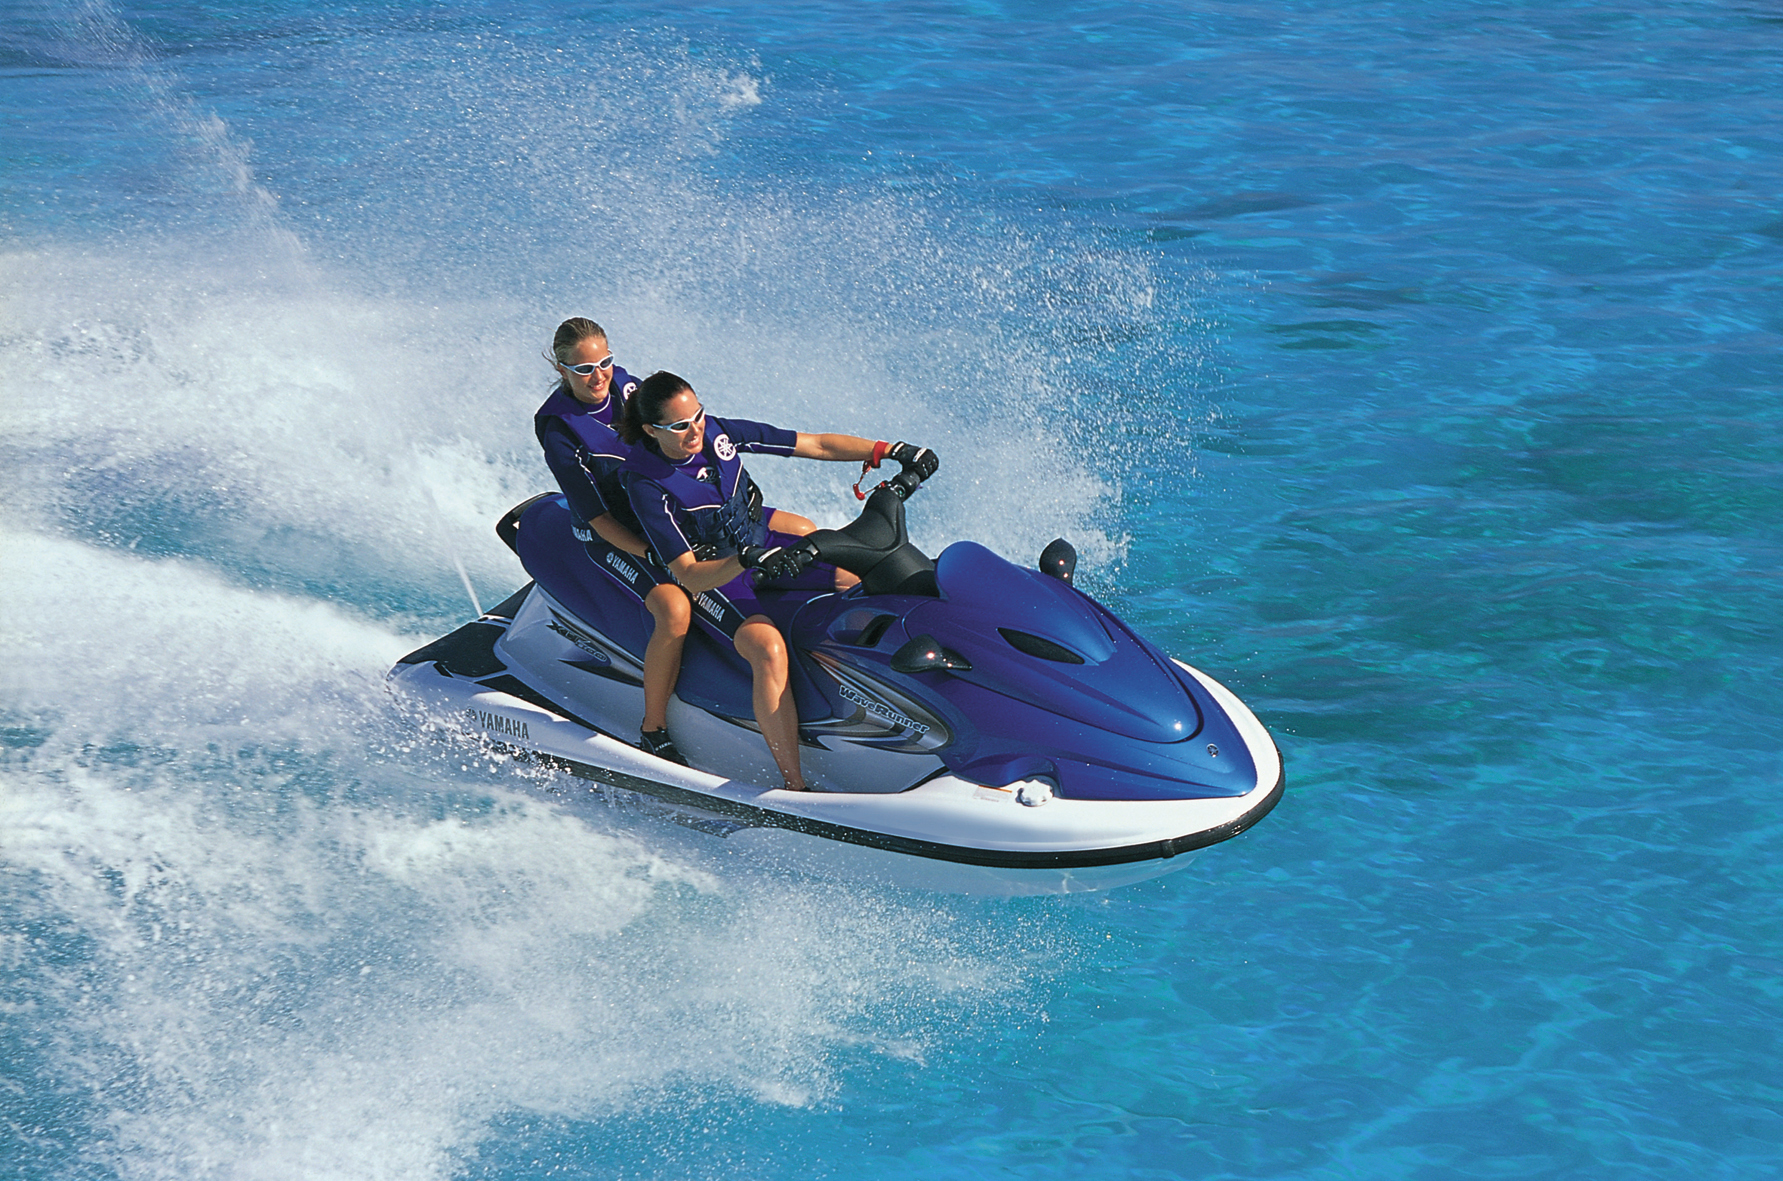 jet ski Find a jetski on gumtree, the #1 site for boats, kayaks & jet skis for sale classifieds ads in the uk.